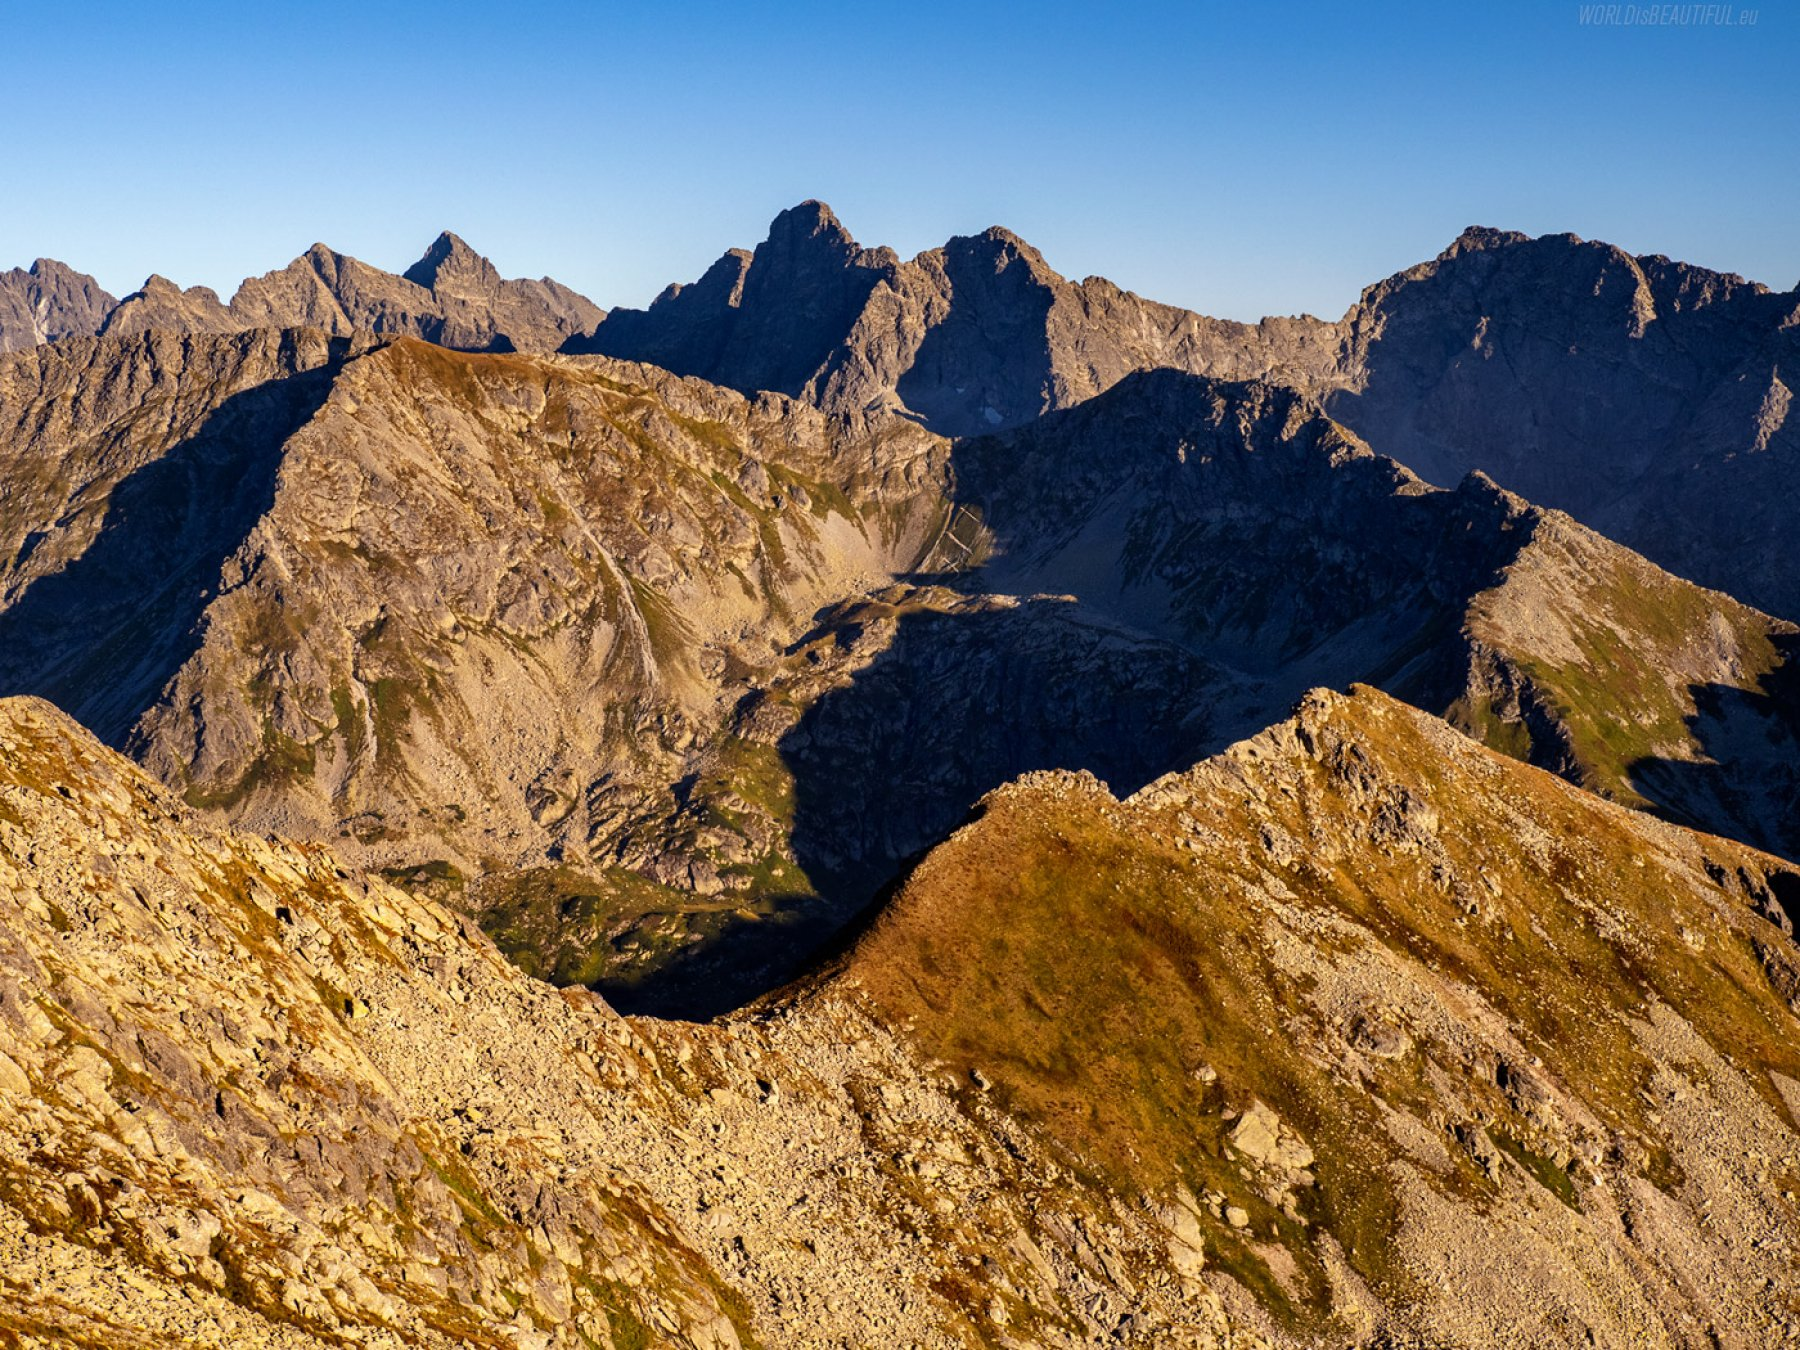 View of the High Tatras from the Zawrat Pass